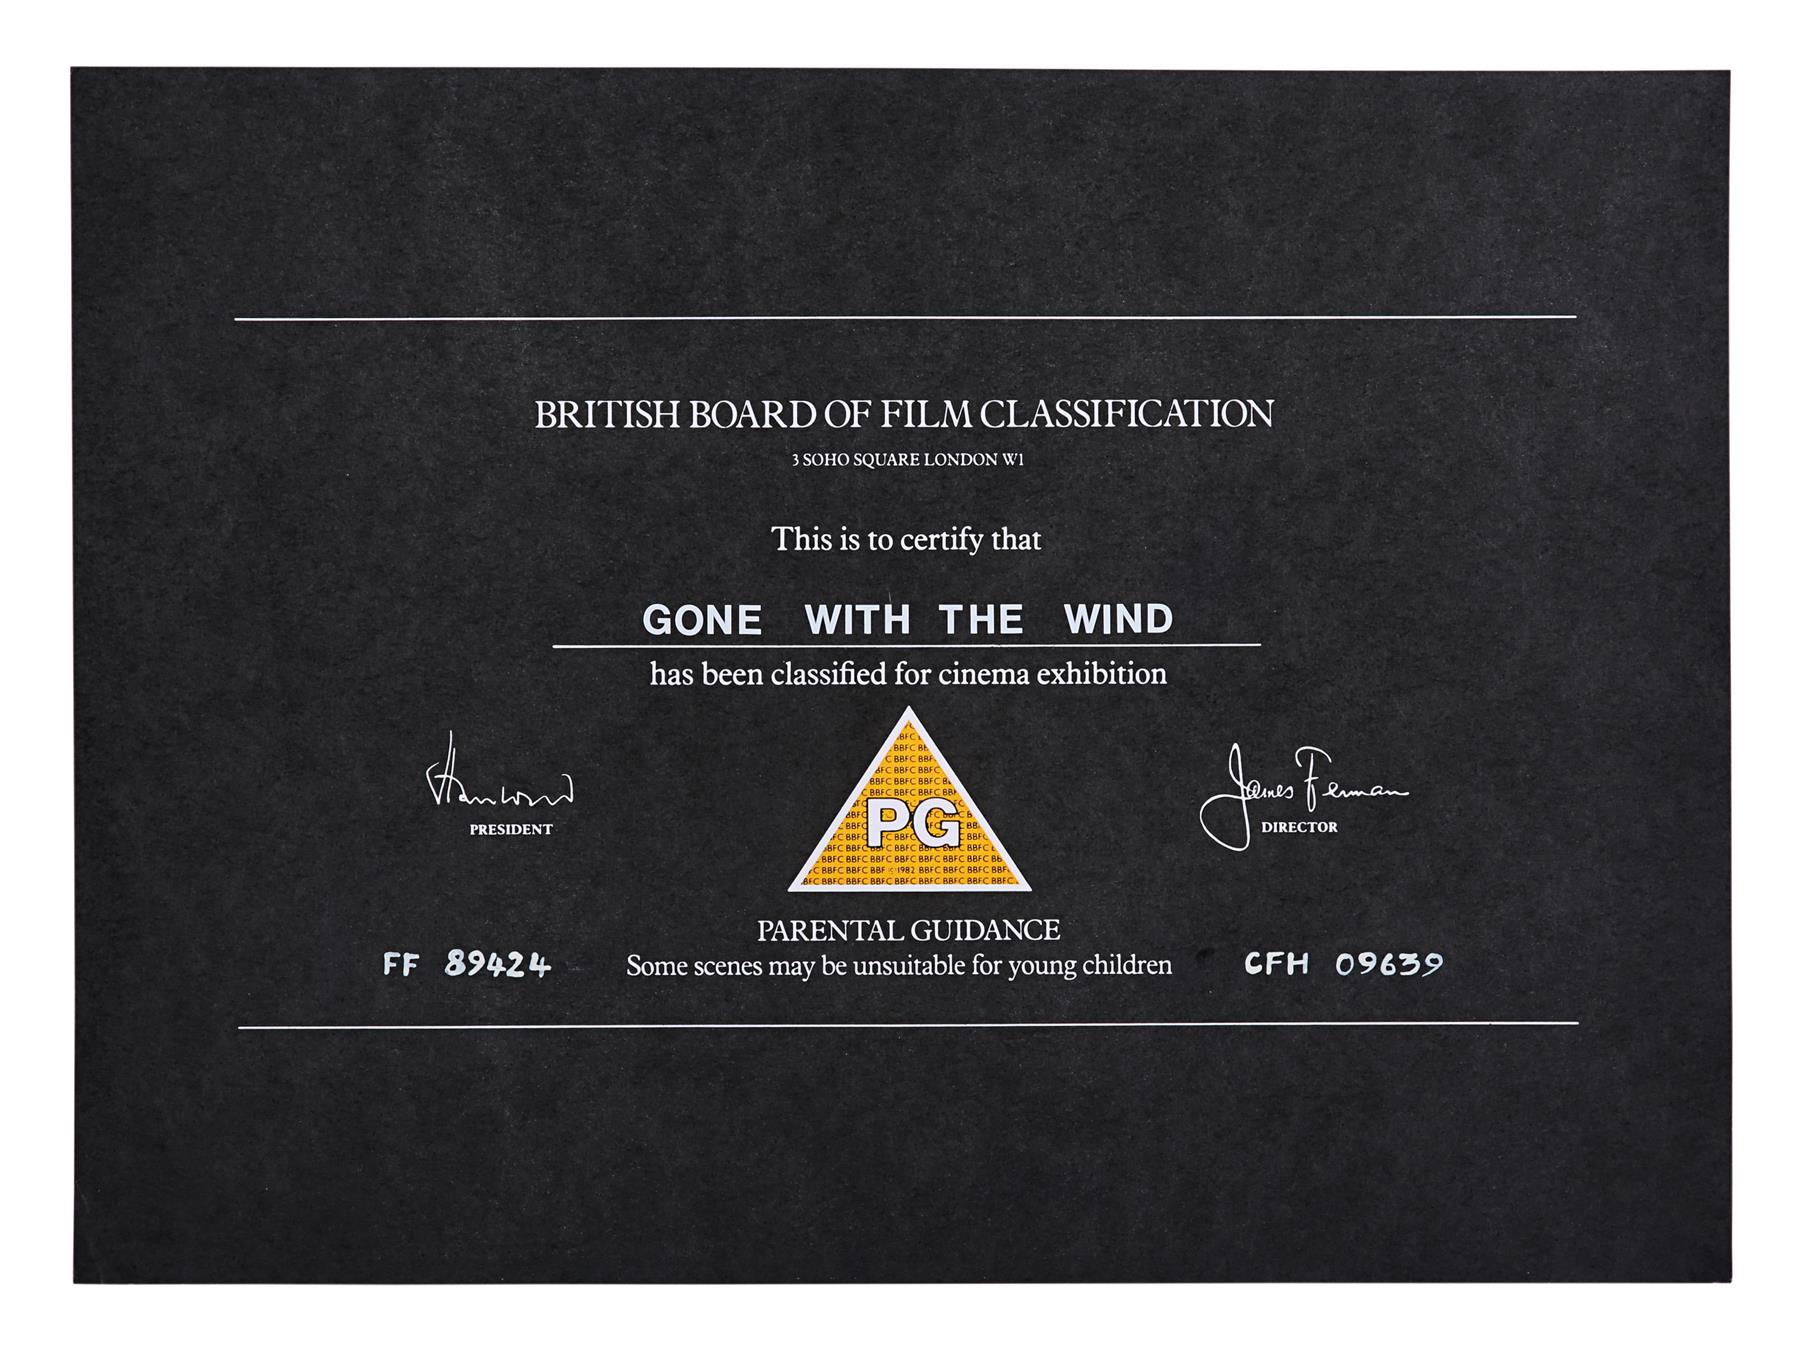 VARIOUS PRODUCTIONS - BBFC Certificates Romance Films - Image 7 of 7